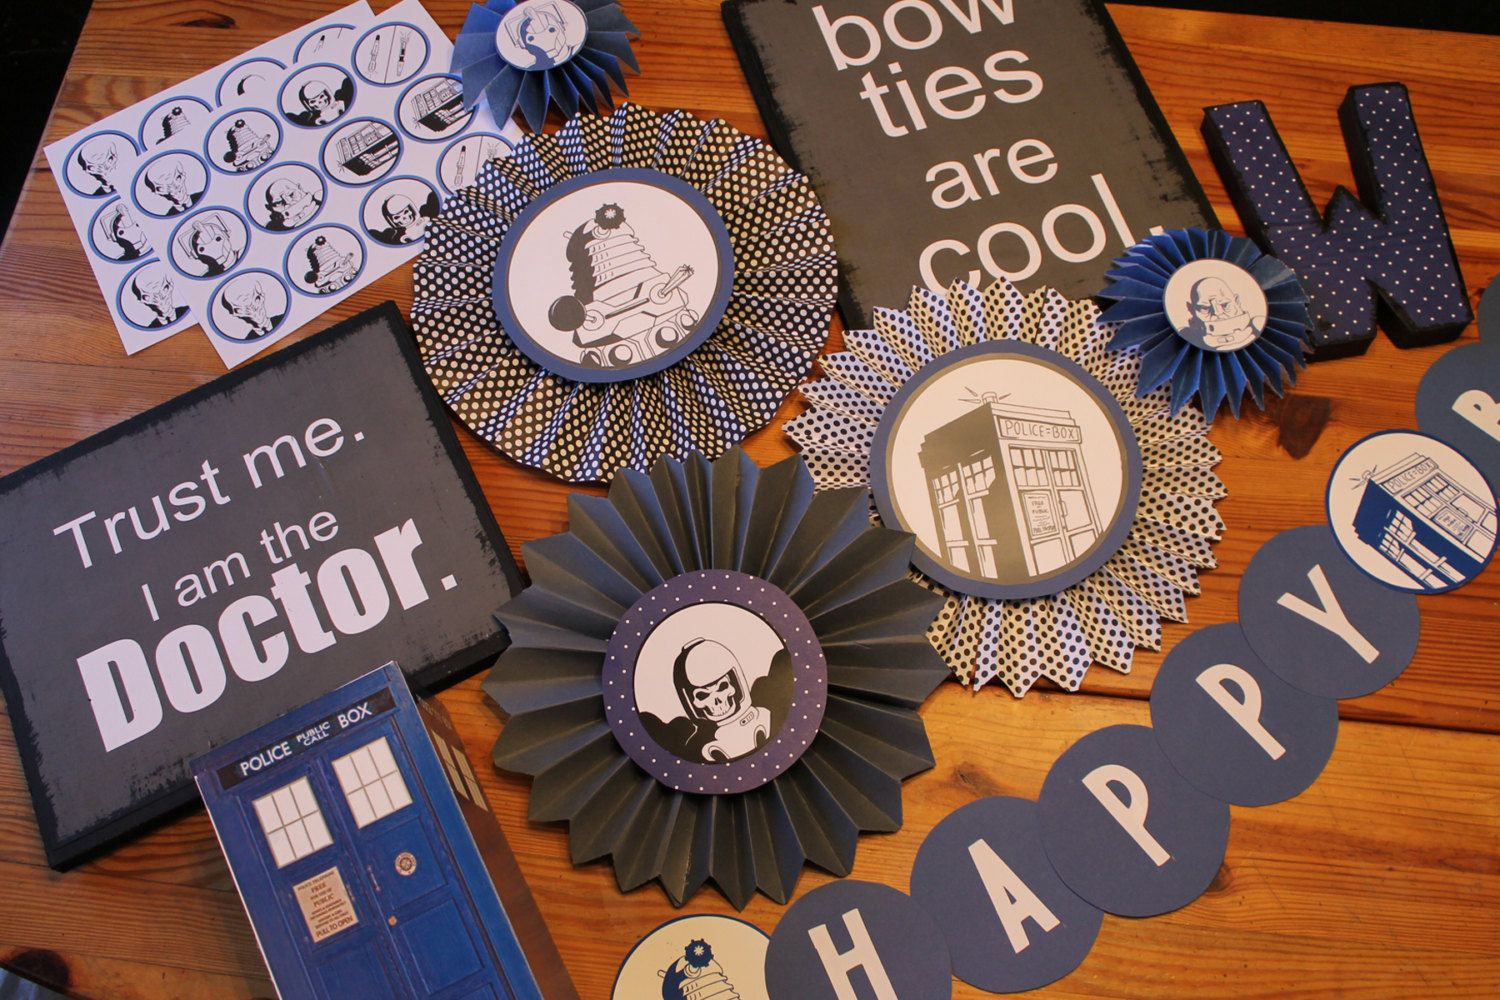 Doctor Who Party Decorations Etsy Doctor Who Party Doctor Who Birthday Doctor Who Decor